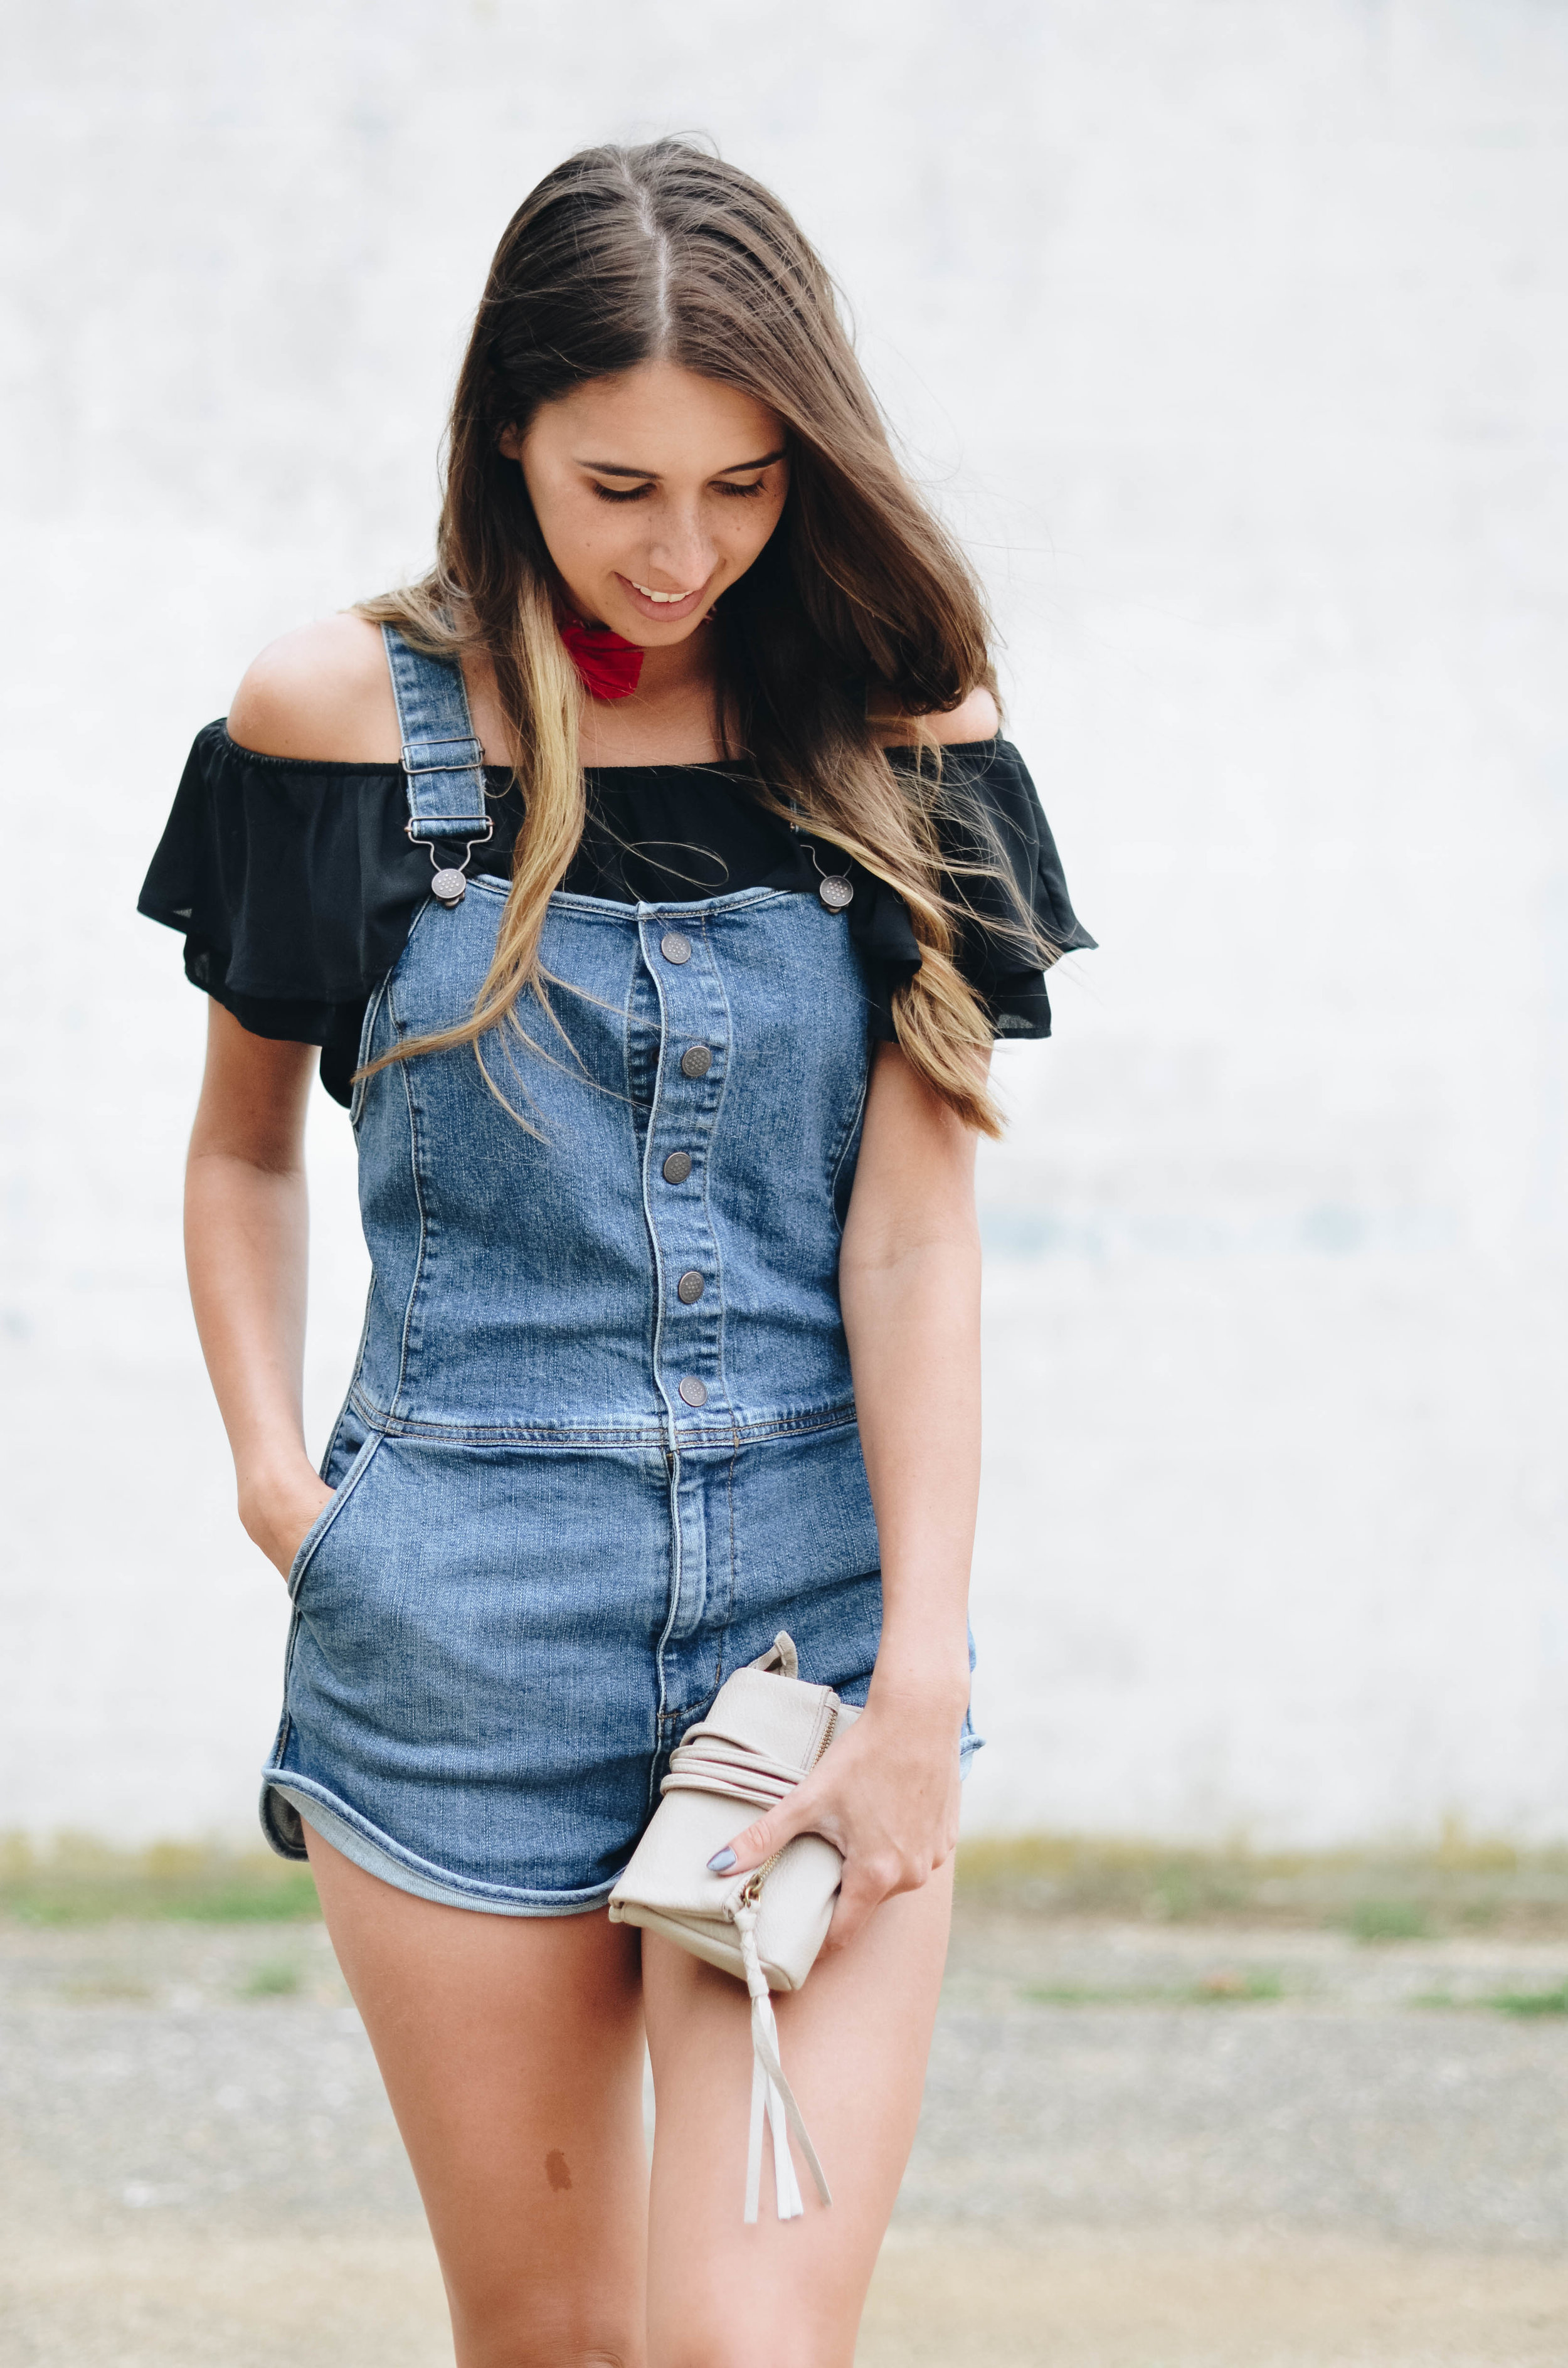 Overalls Off the shoulder top style outfit